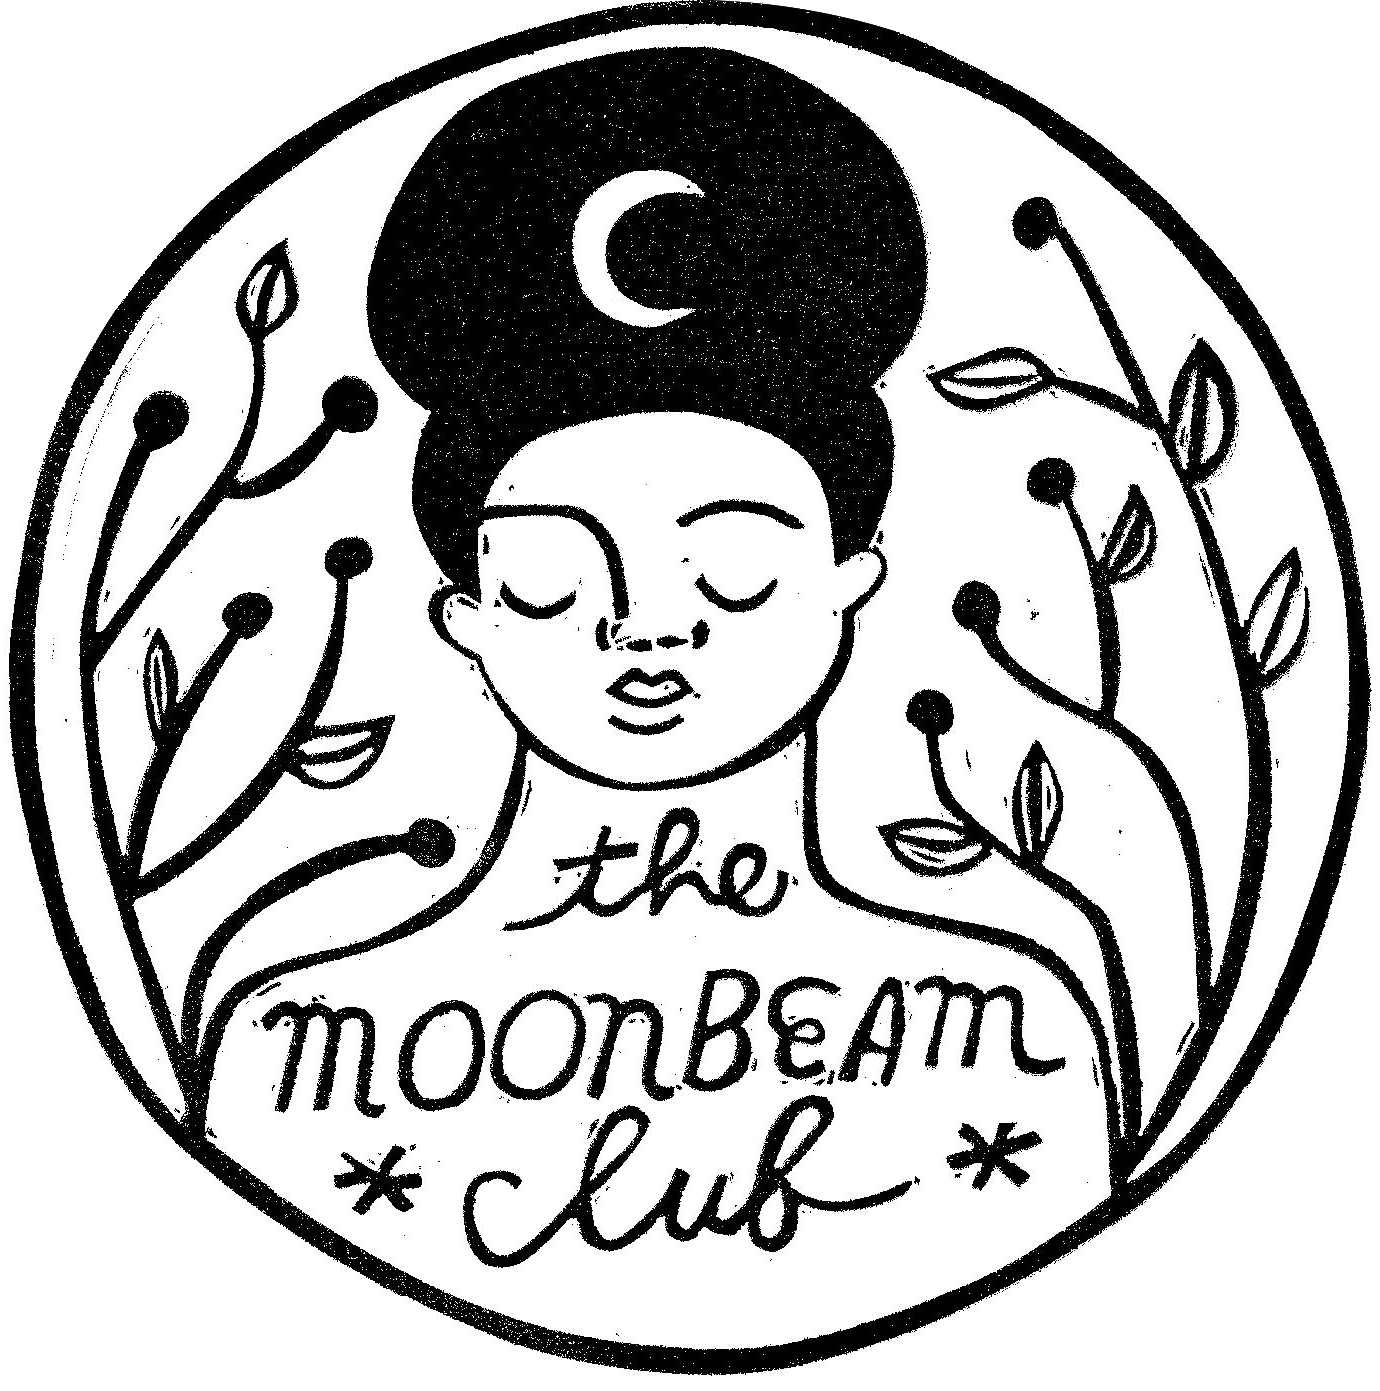 the moonbeam club